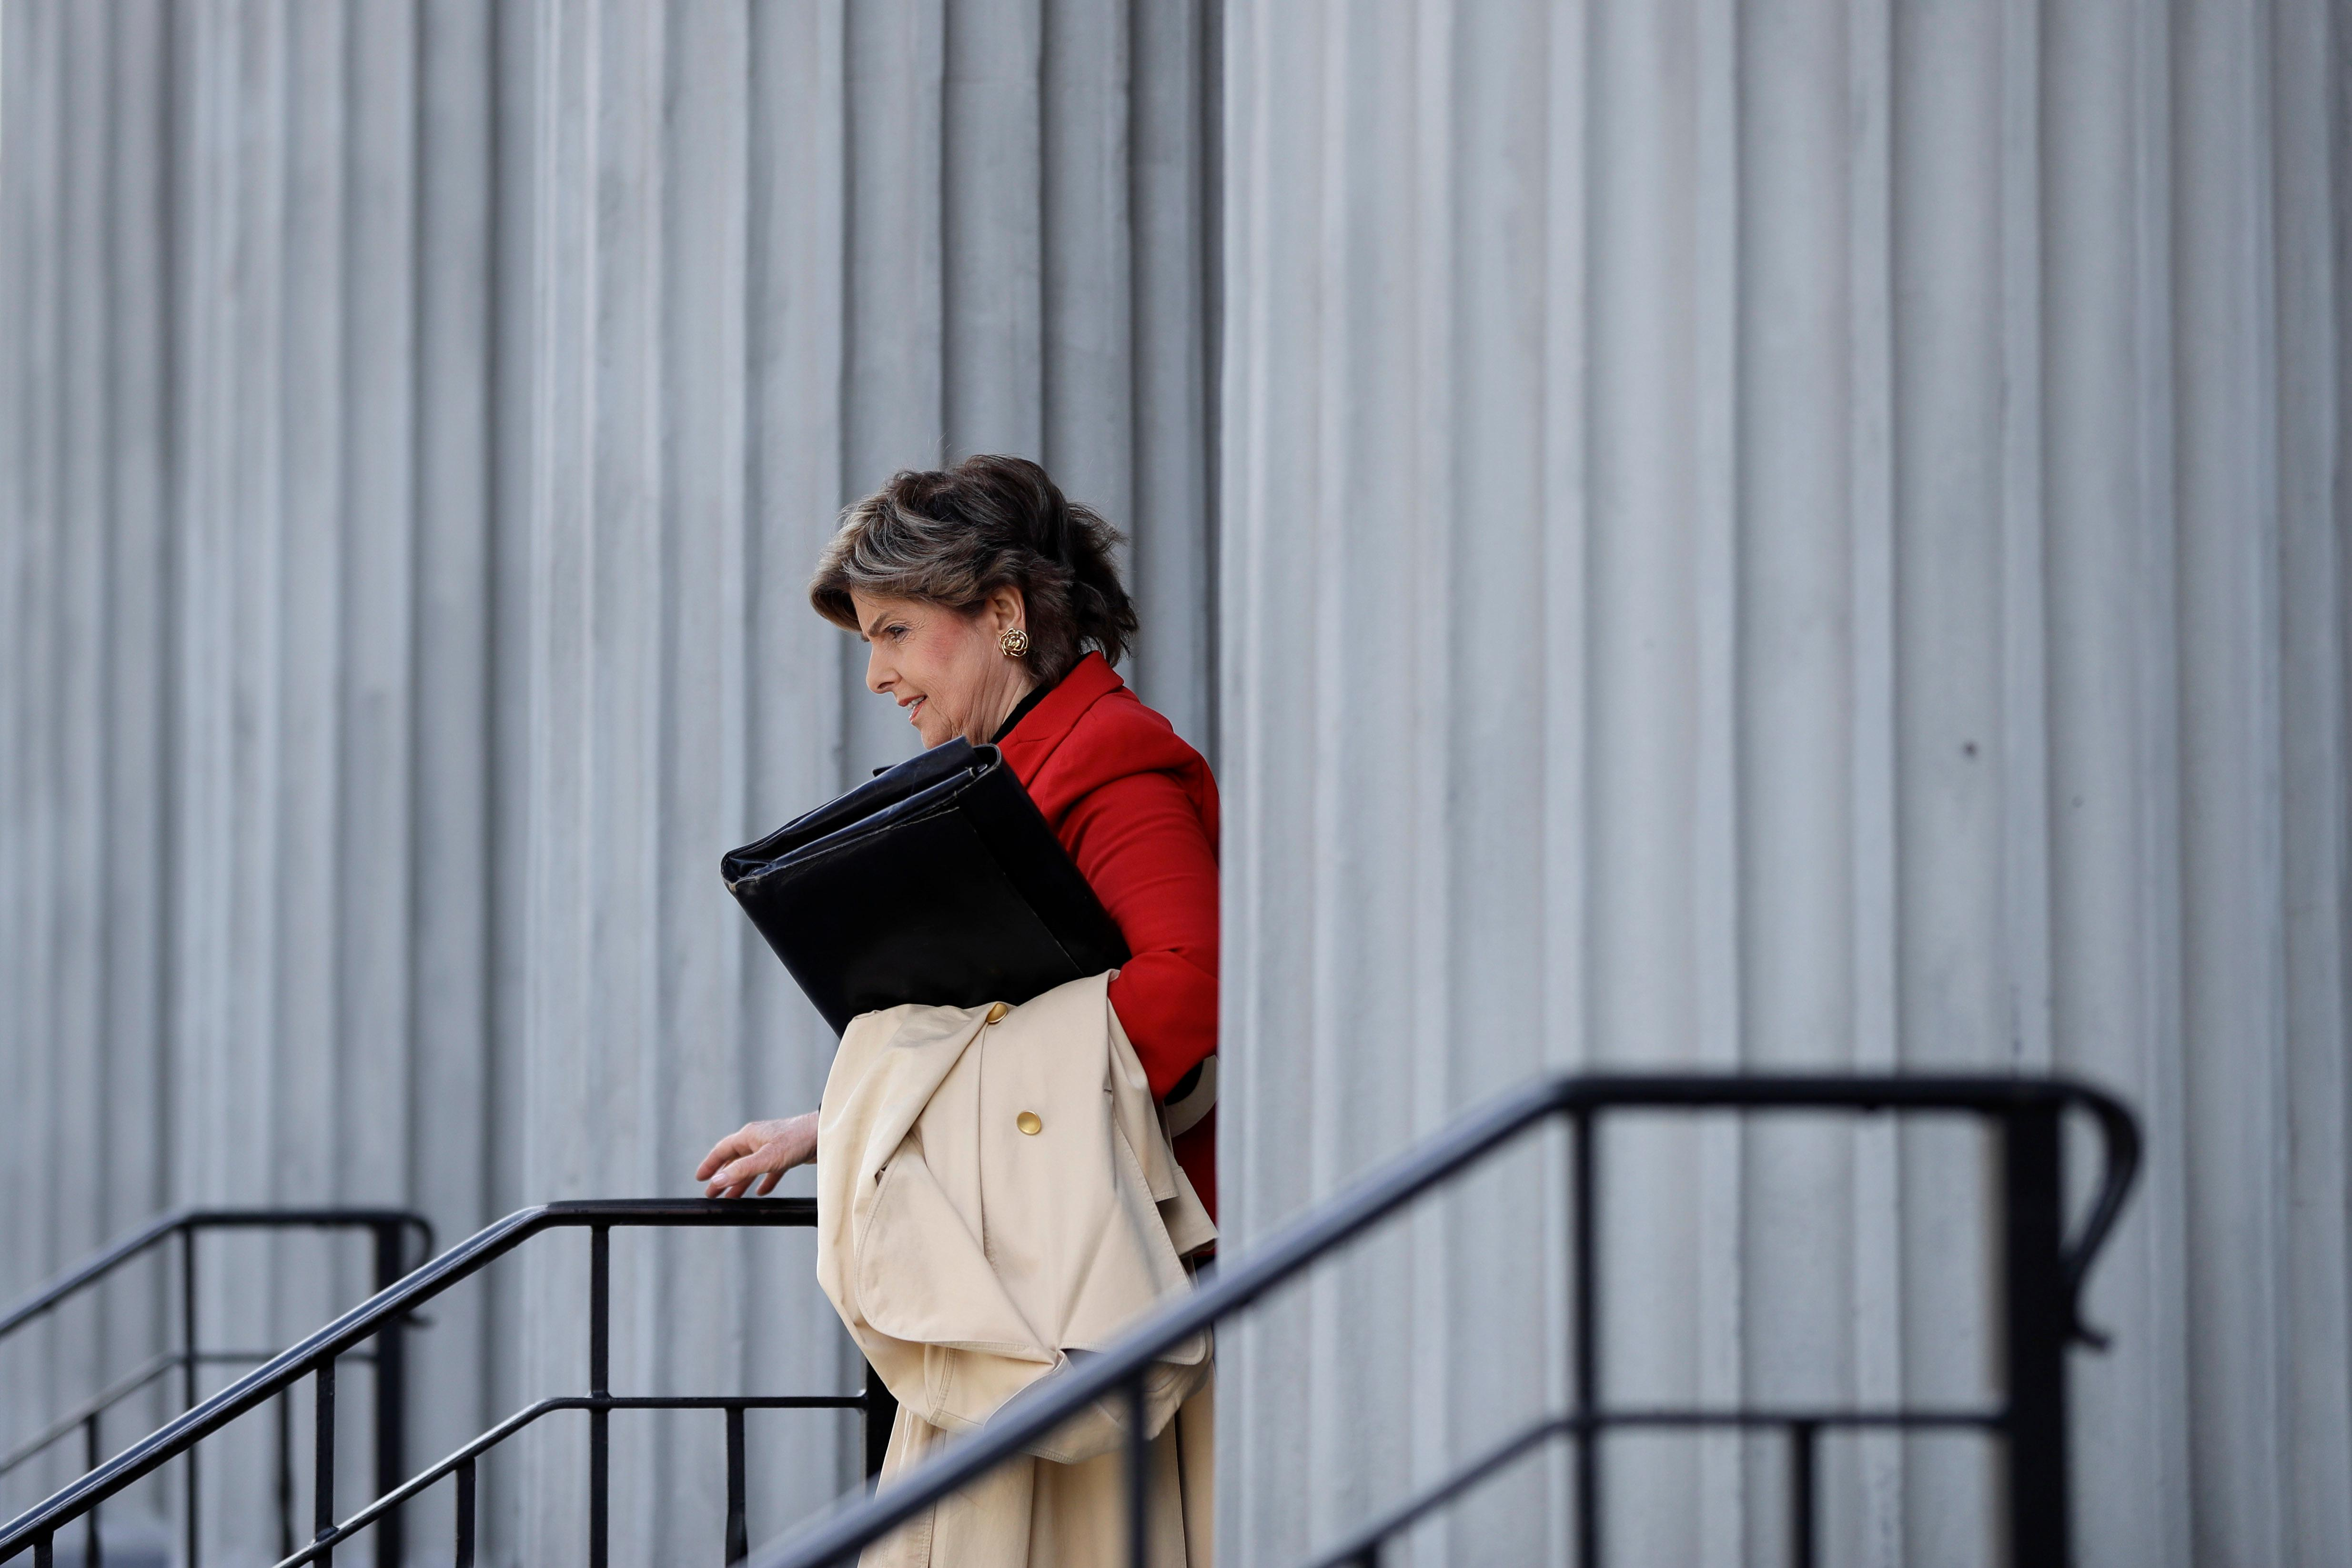 Attorney Gloria Allred walks outside the Montgomery County Courthouse during a break in Bill Cosby's sexual assault retrial, Monday, April 16, 2018, in Norristown, Pa. (AP Photo/Matt Slocum)